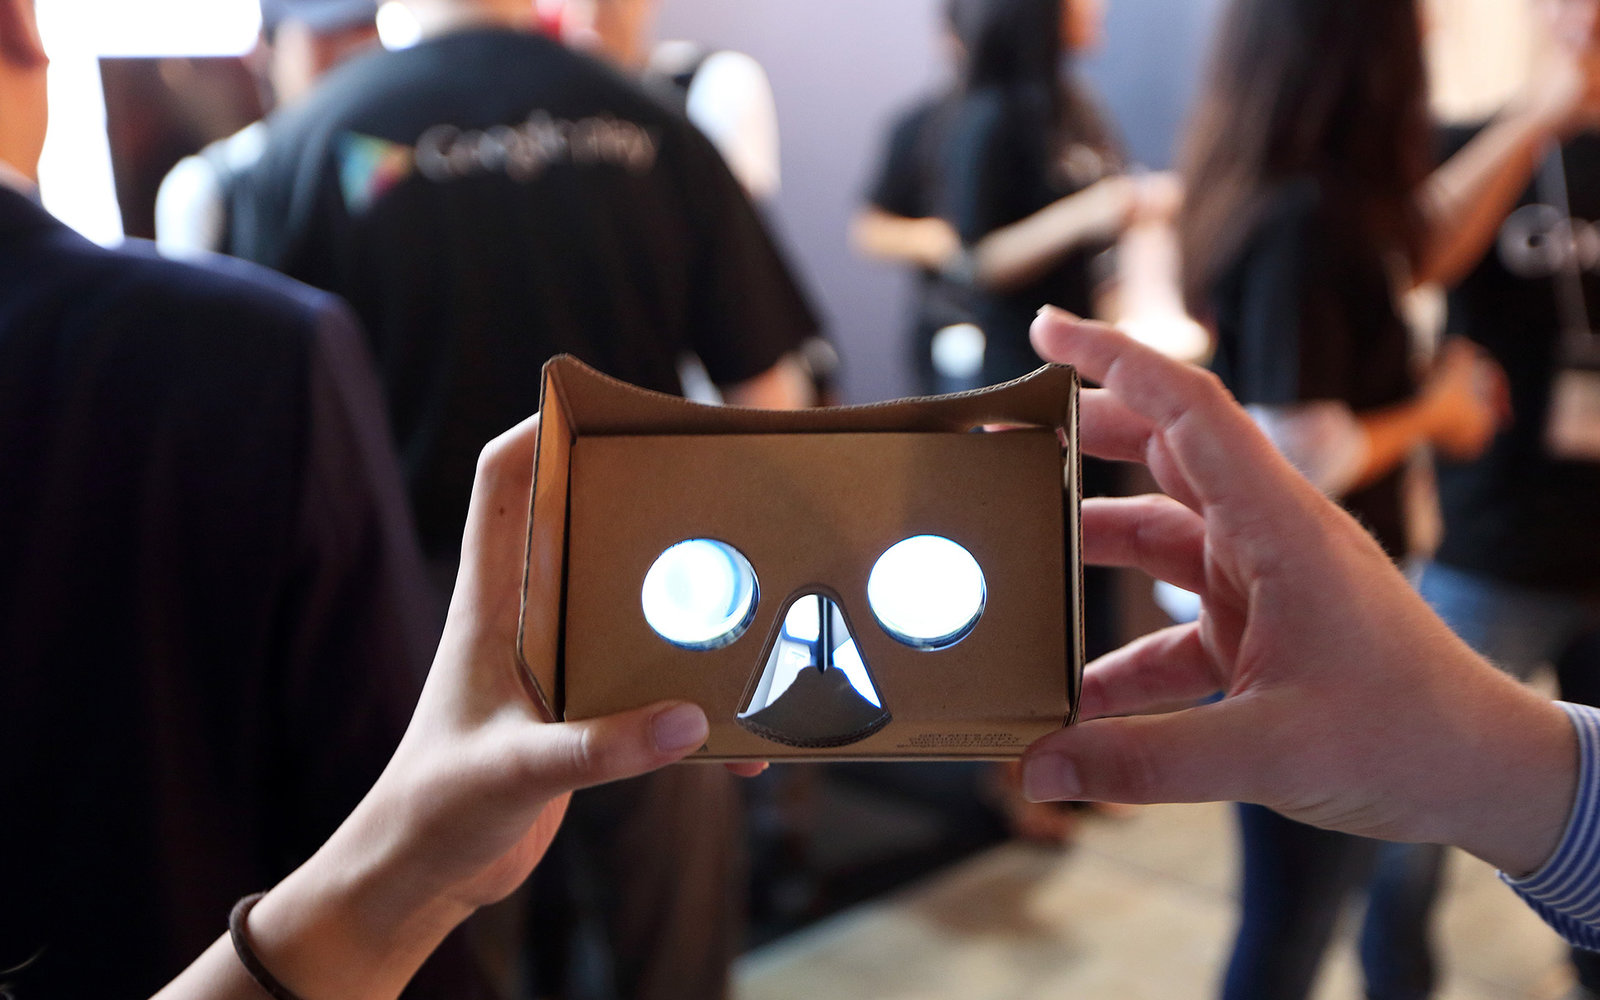 Google App Uses Vr To Visit The World S Greatest Sites